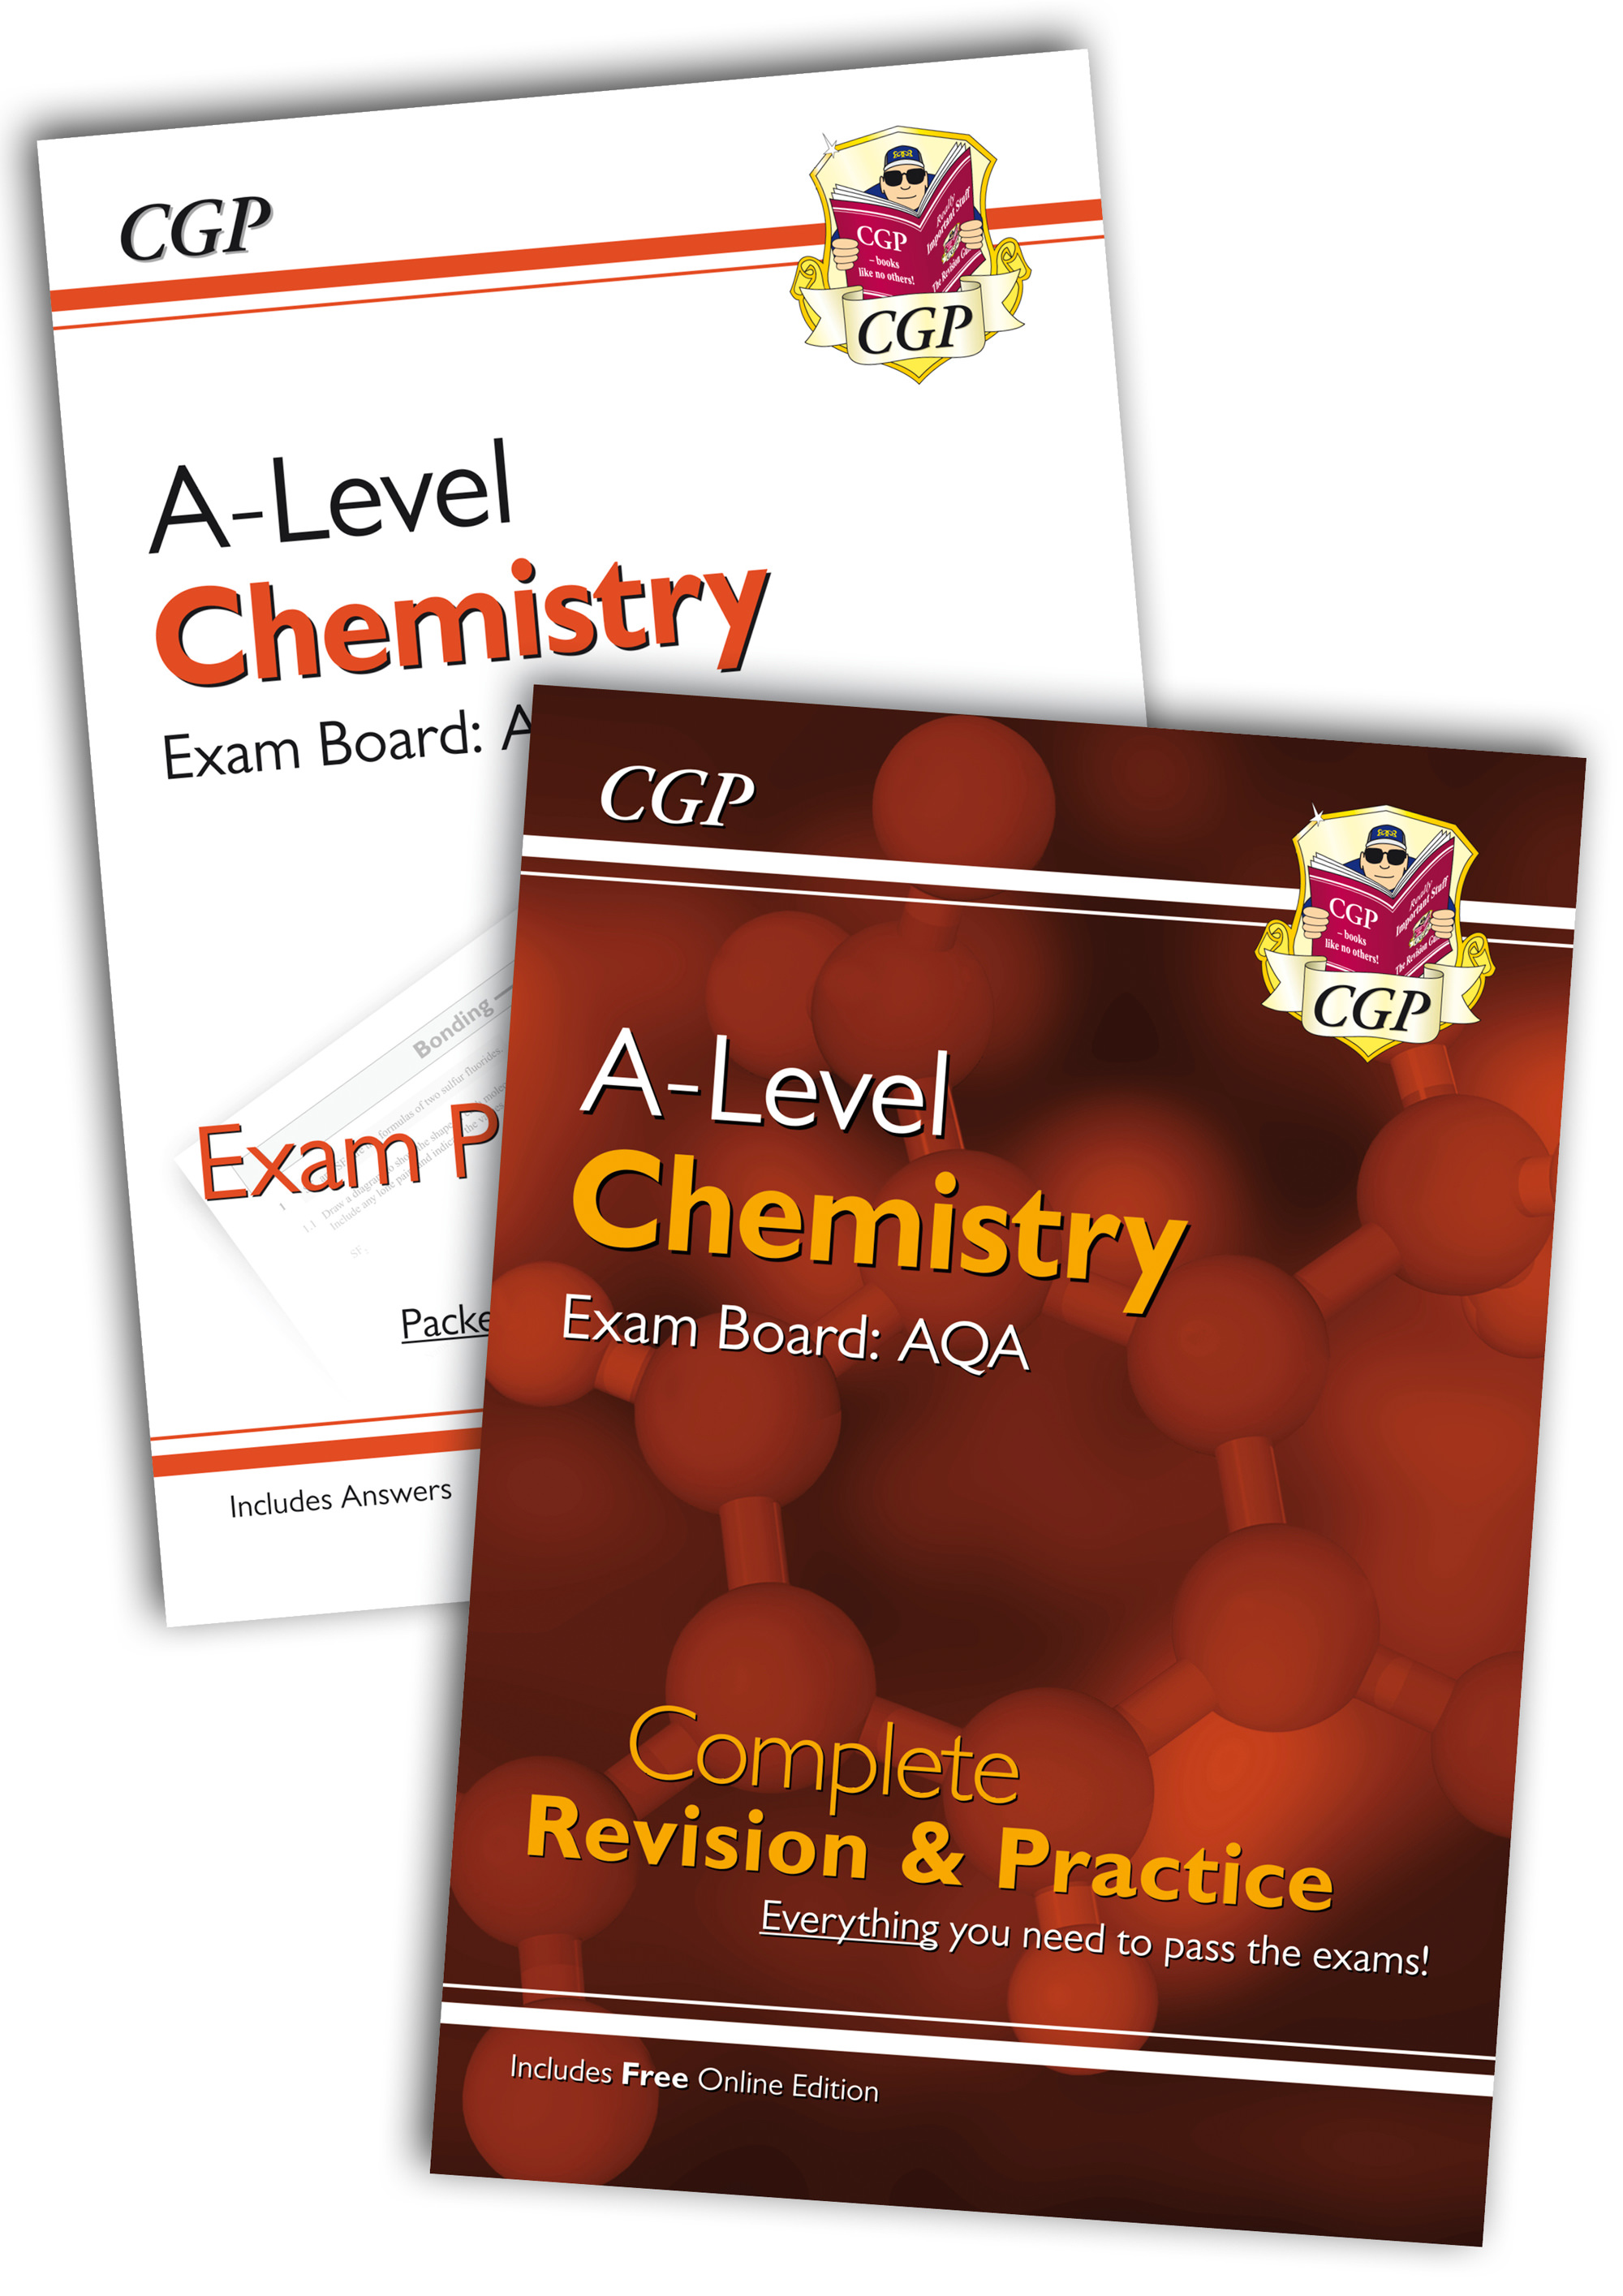 CARQB71 - Complete Revision and Exam Practice A-Level Chemistry Bundle: AQA Year 1 & 2